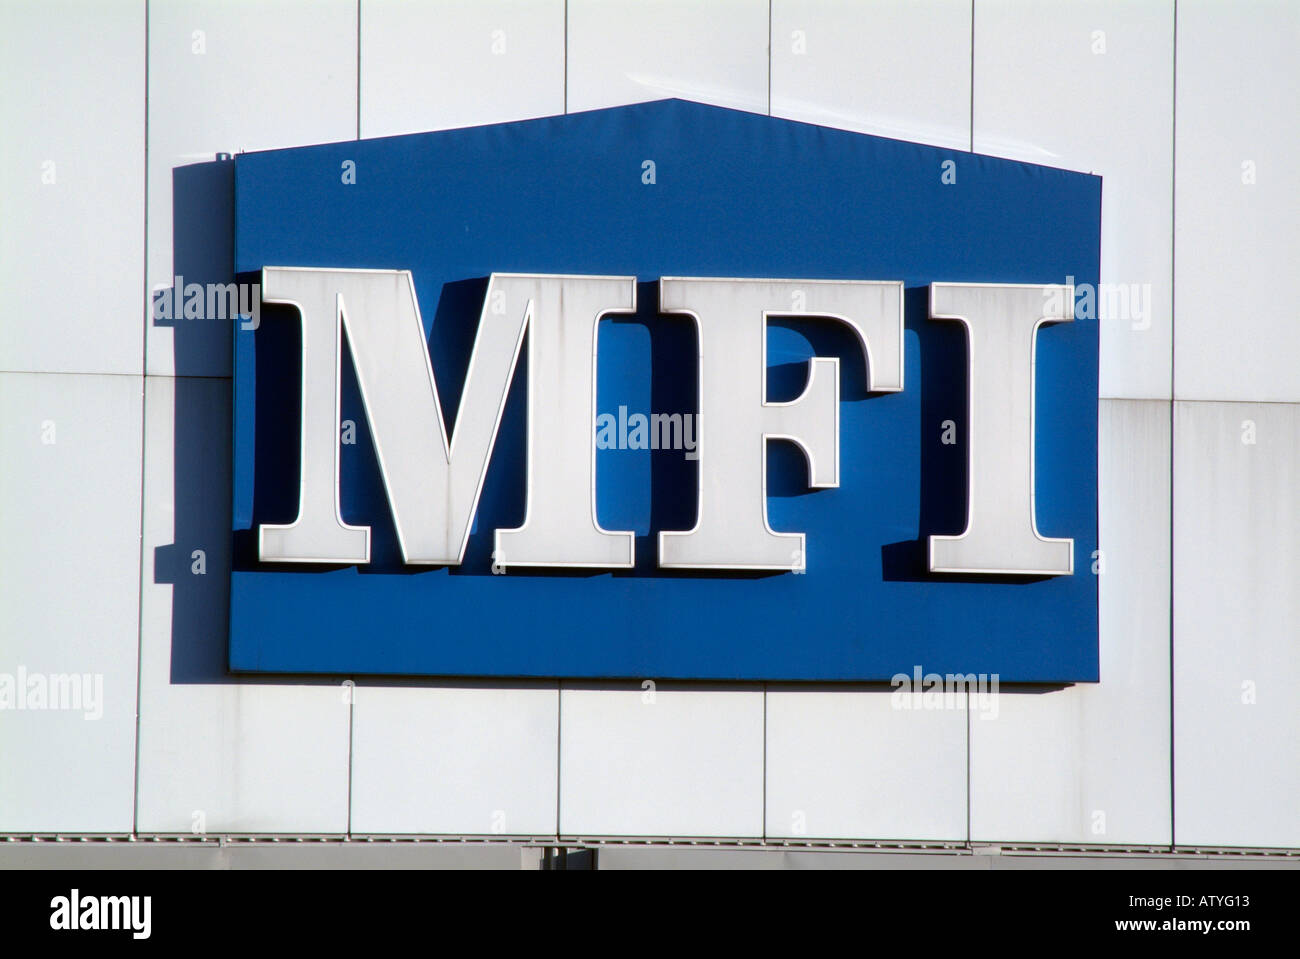 Mfi home improvement centre store logo red blue white exterior mfi home improvement centre store logo red blue white exterior display sign diy do it yourself store banner advertisement solutioingenieria Choice Image